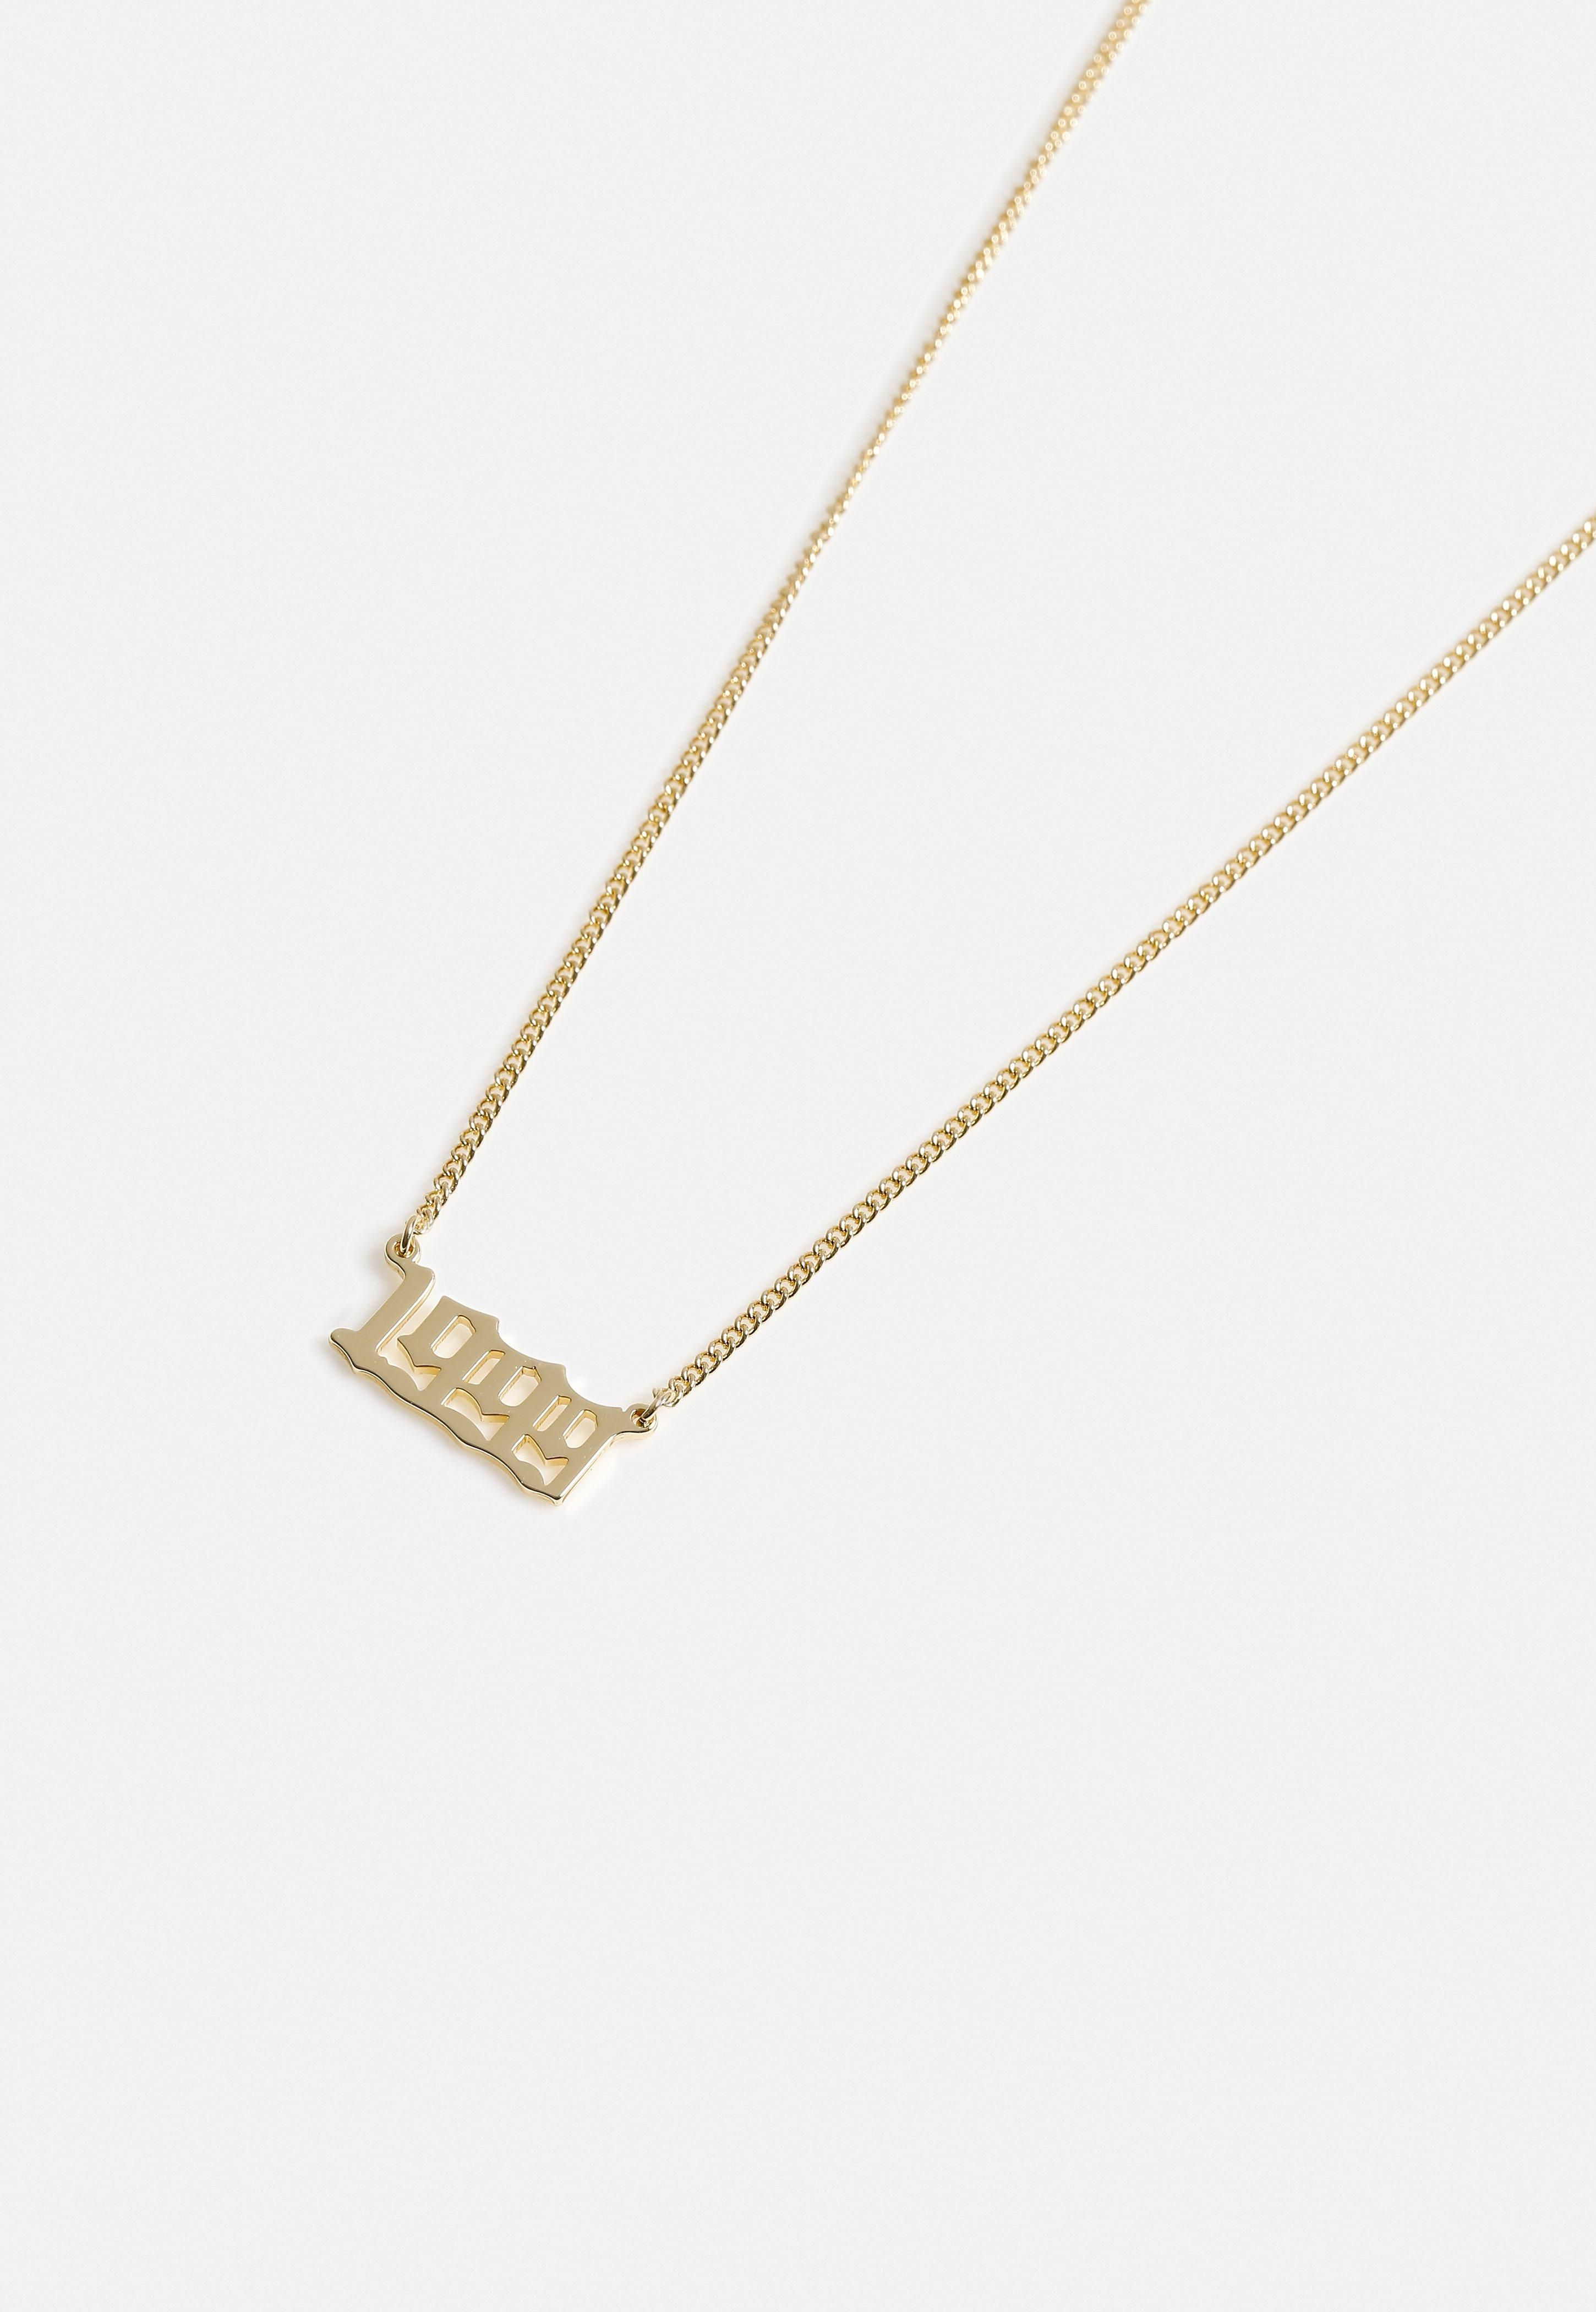 Gold Look Birth Year 1999 Necklace Sponsored Birth Sponsored Gold Year In 2020 Fashion Costume Jewelry Women Jewelry Necklace